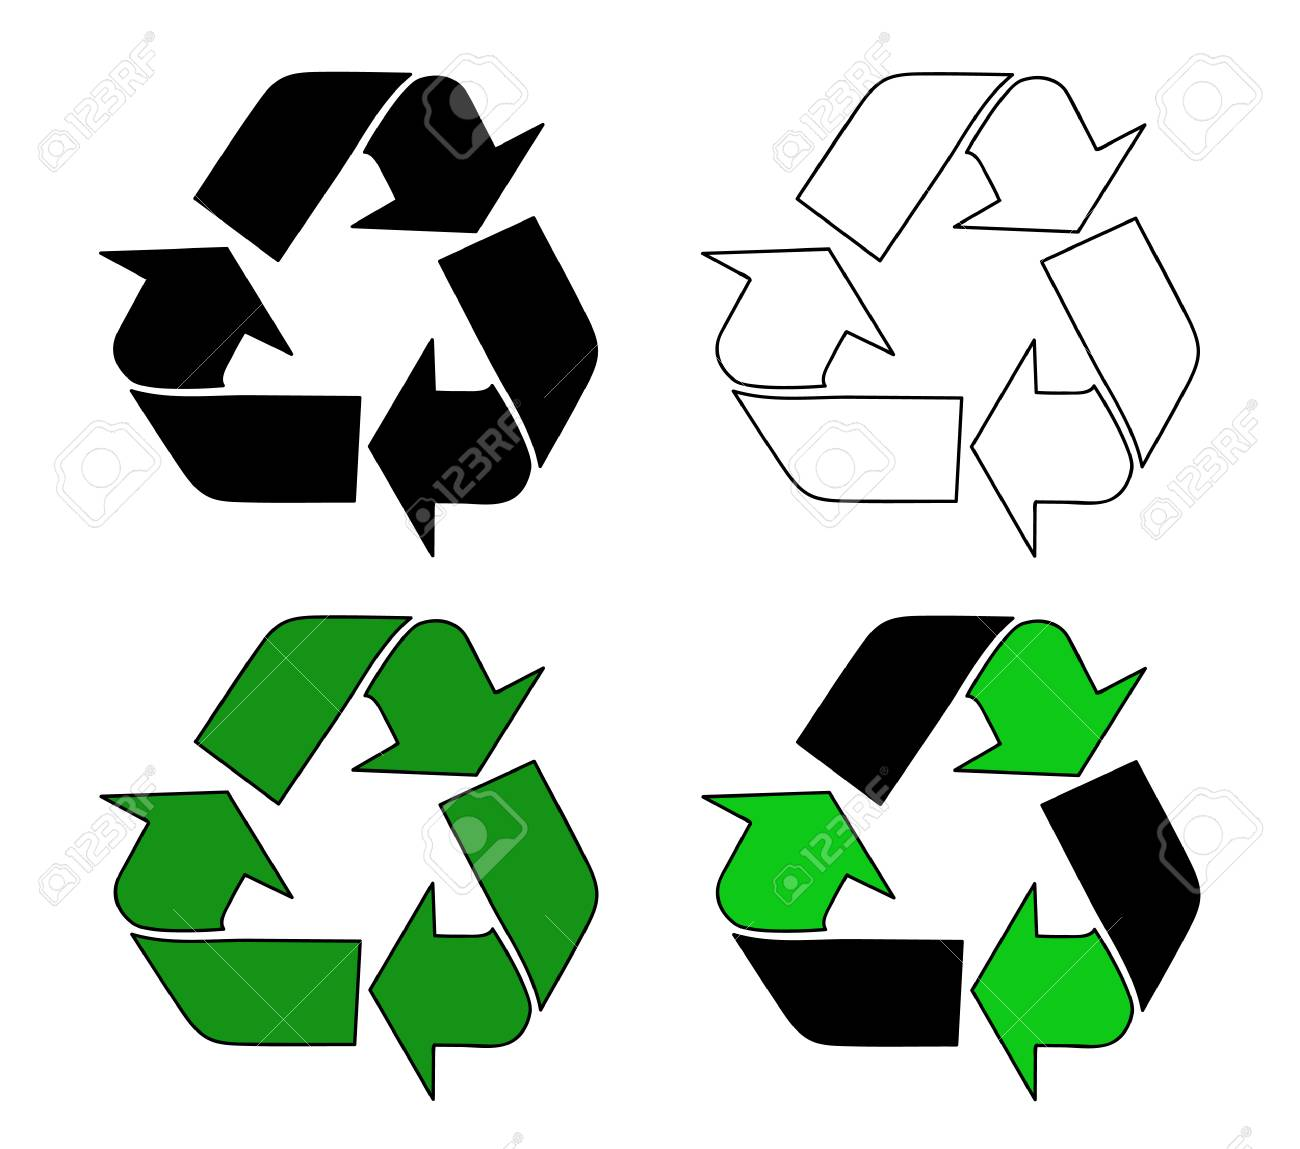 Recycle Symbol Royalty Free Cliparts Vectors And Stock